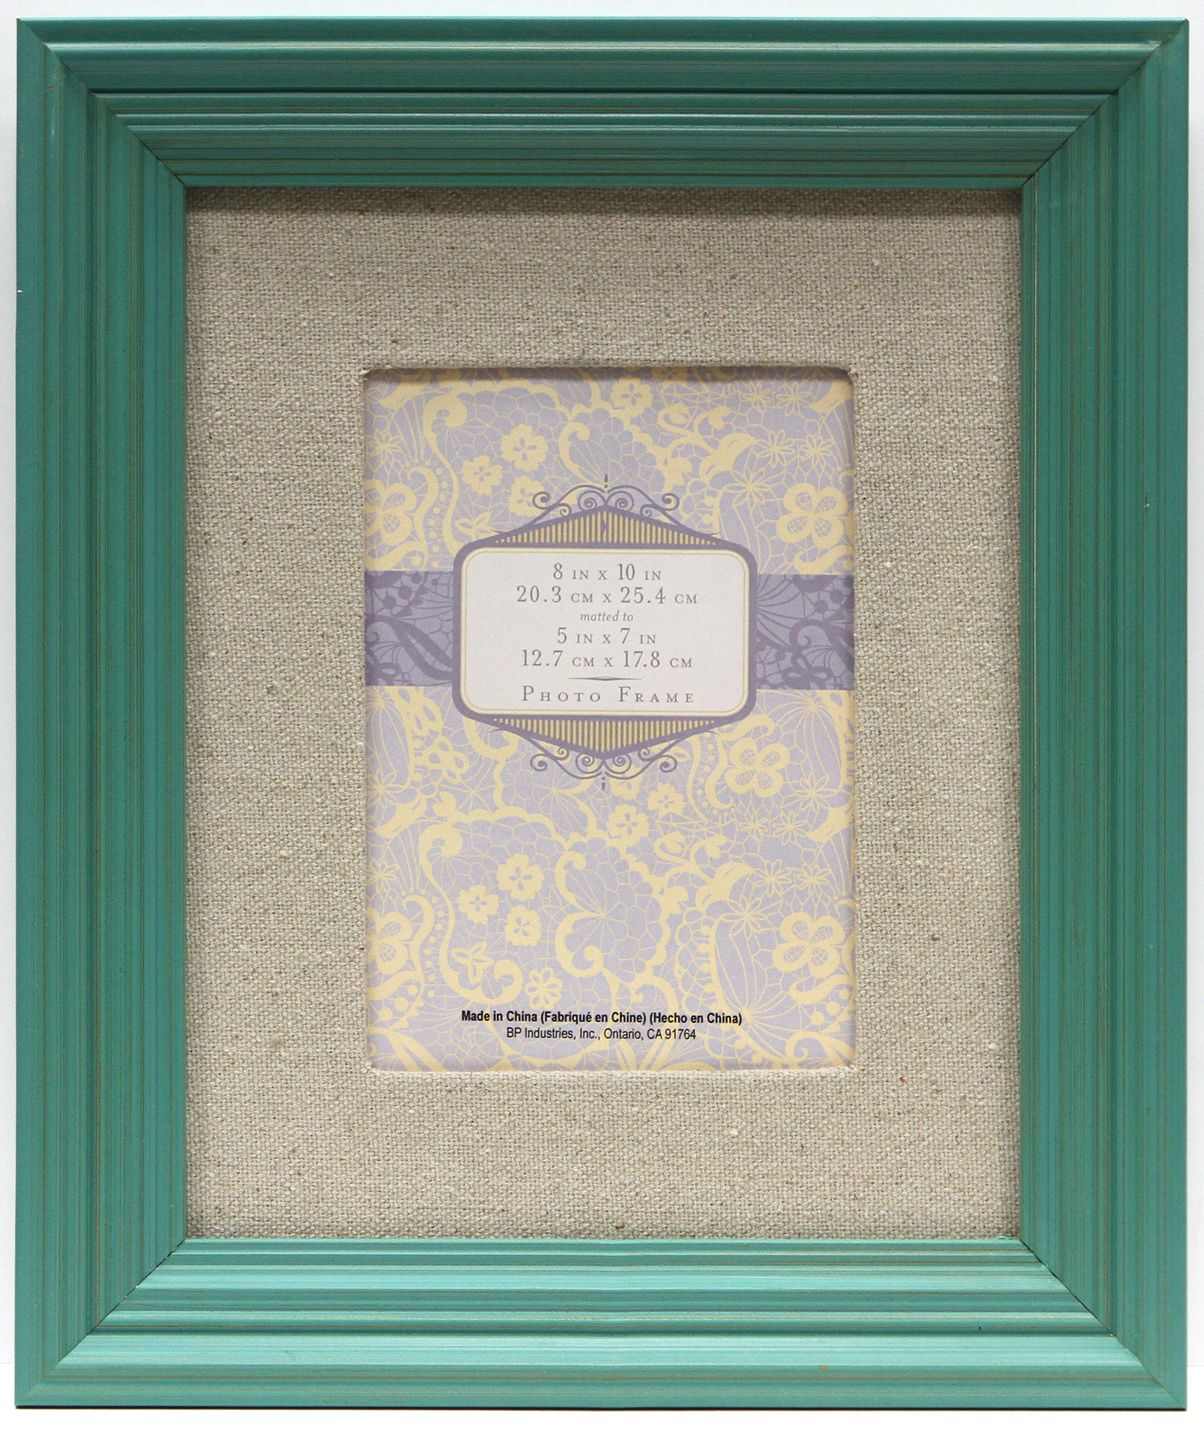 8X10 Mat To 5X7 Step Bright Teal Frame | getting crafty | Pinterest ...